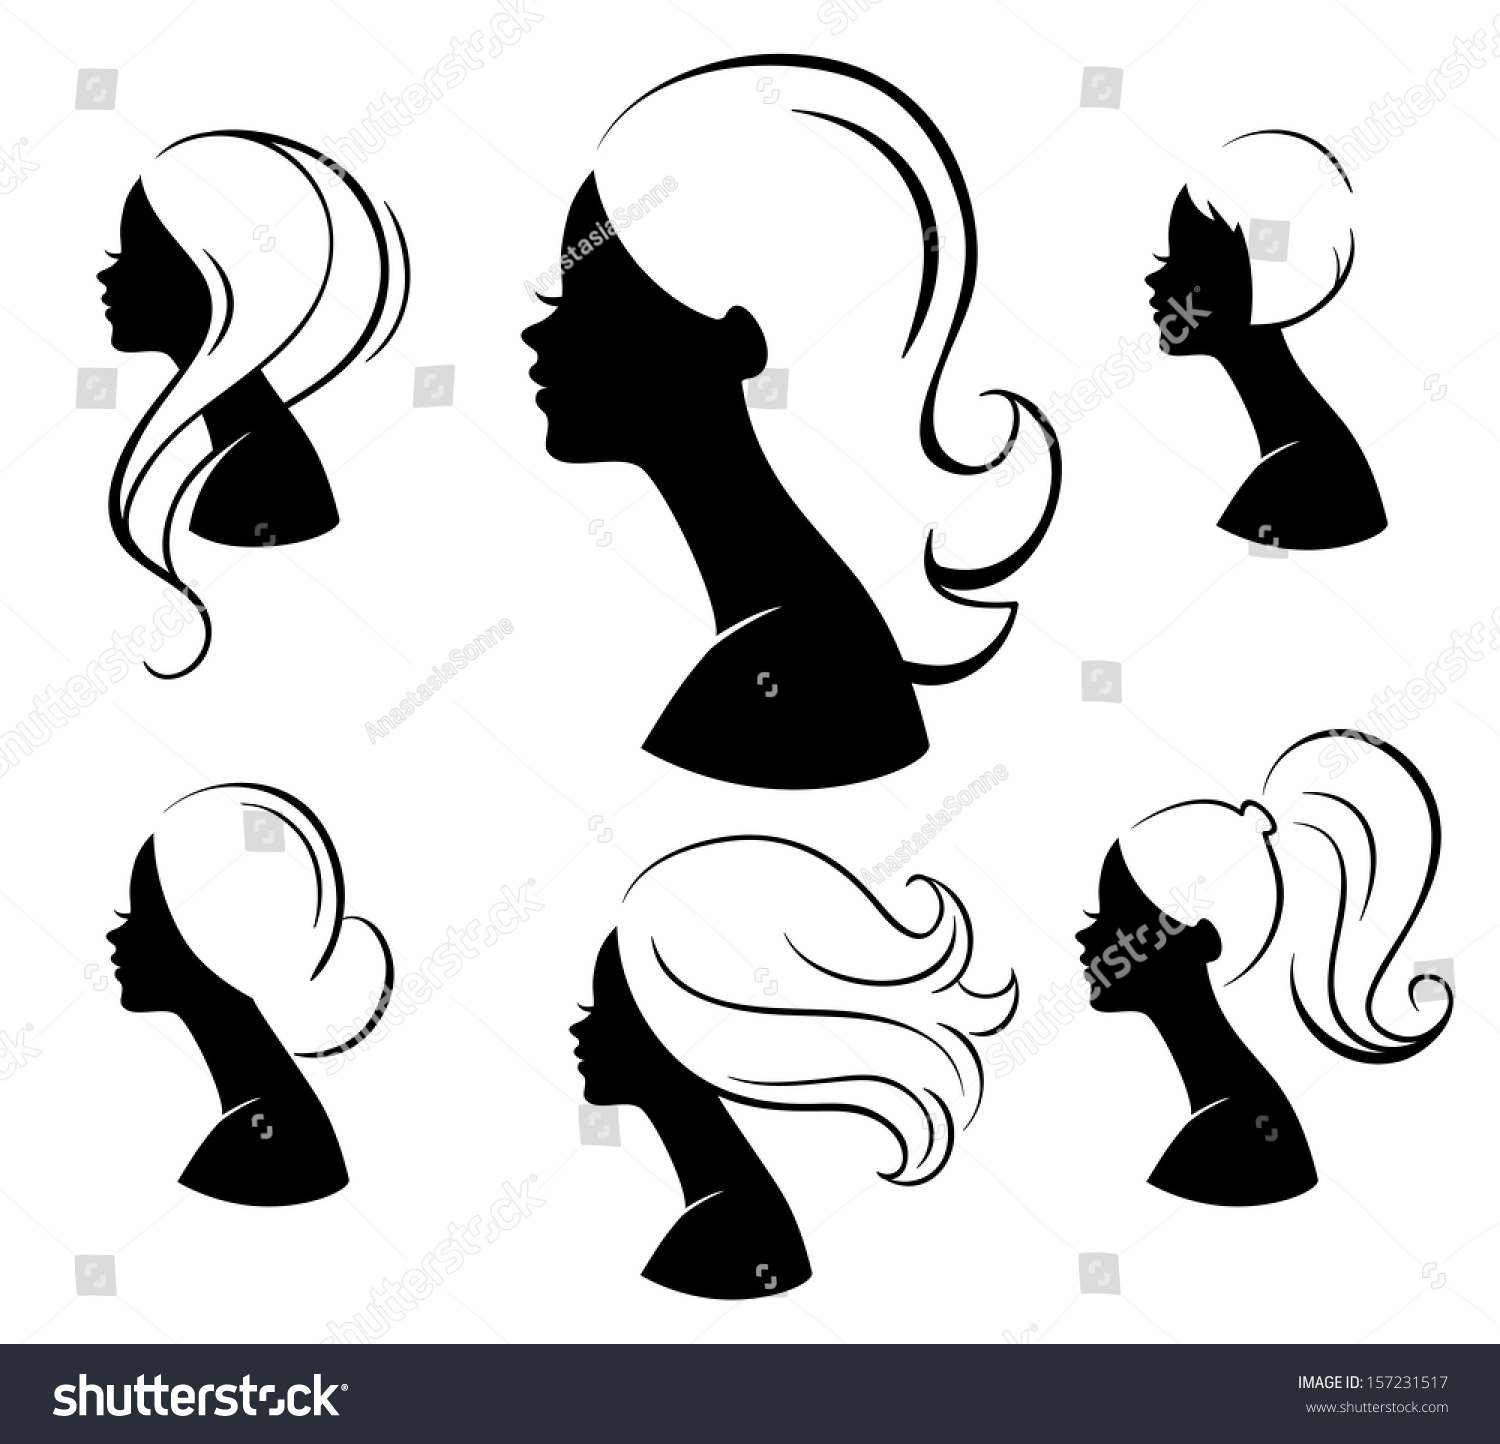 free clipart hairstyles - photo #38